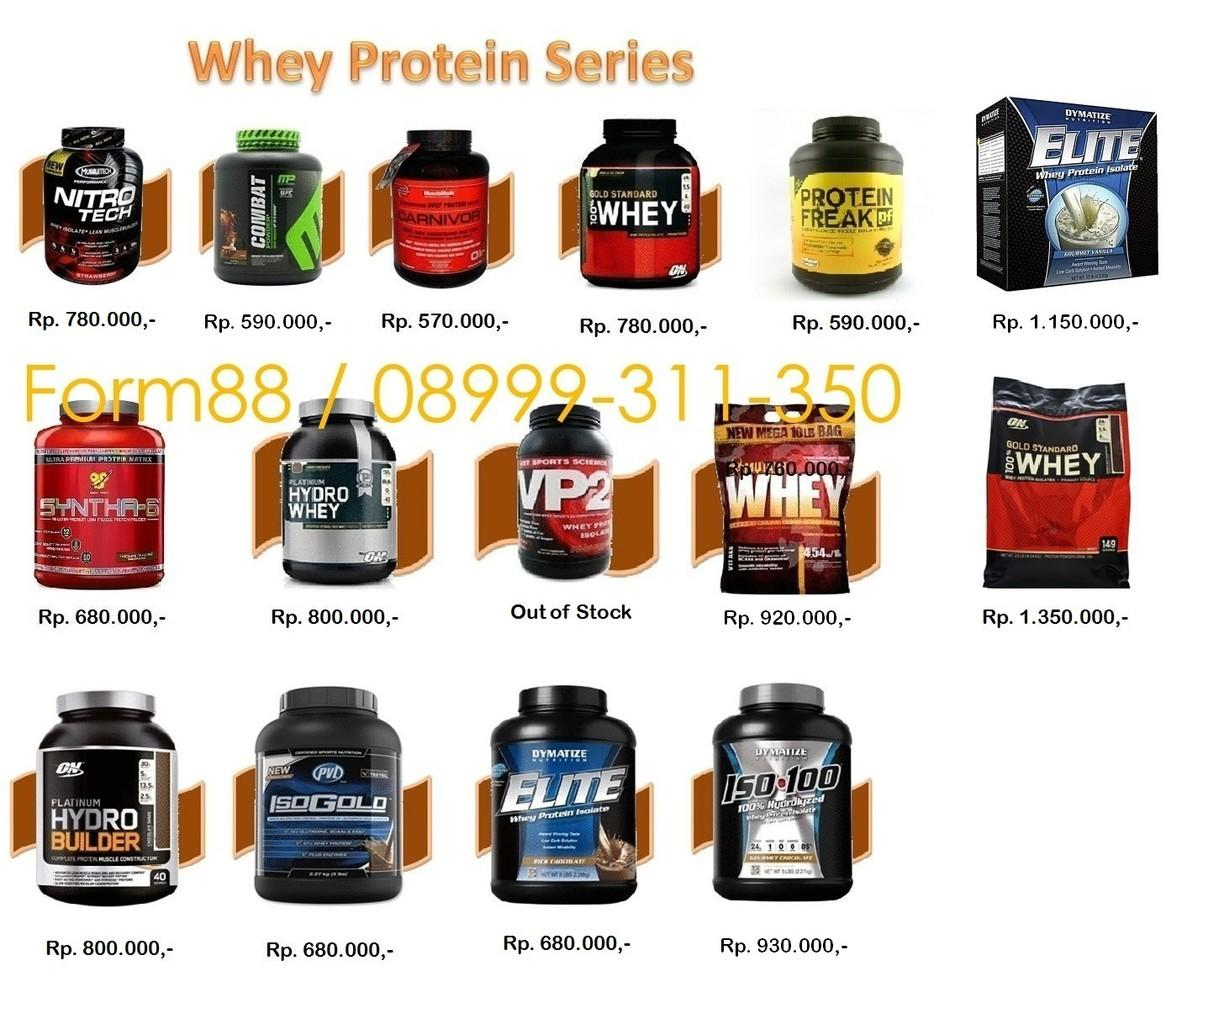 Terjual Suplemen Fitnesswhey Proteingainerbcaaaminocreatine Musclemeds Amino Beef Carnivor 300 Tabs Aminocarnivor Gym With Bcaa N Creatine Free Shaker Proteingainerbcaaaminocreatinefatburner